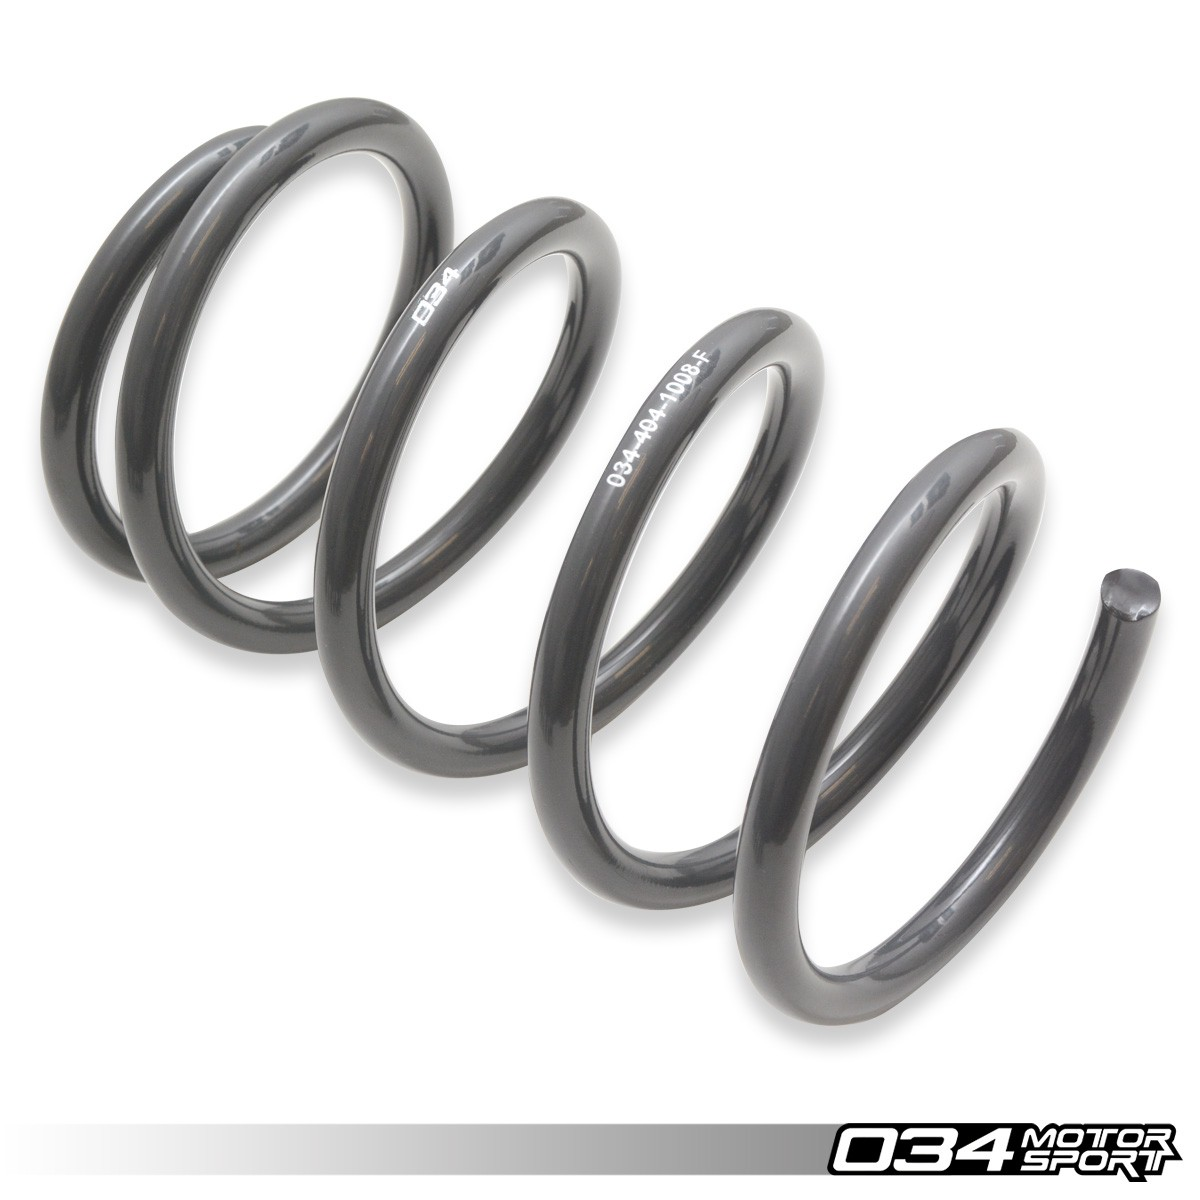 DYNAMIC+ LOWERING SPRINGS, 8V.5 AUDI RS3 QUATTRO PERFORMANCE SPRING SET